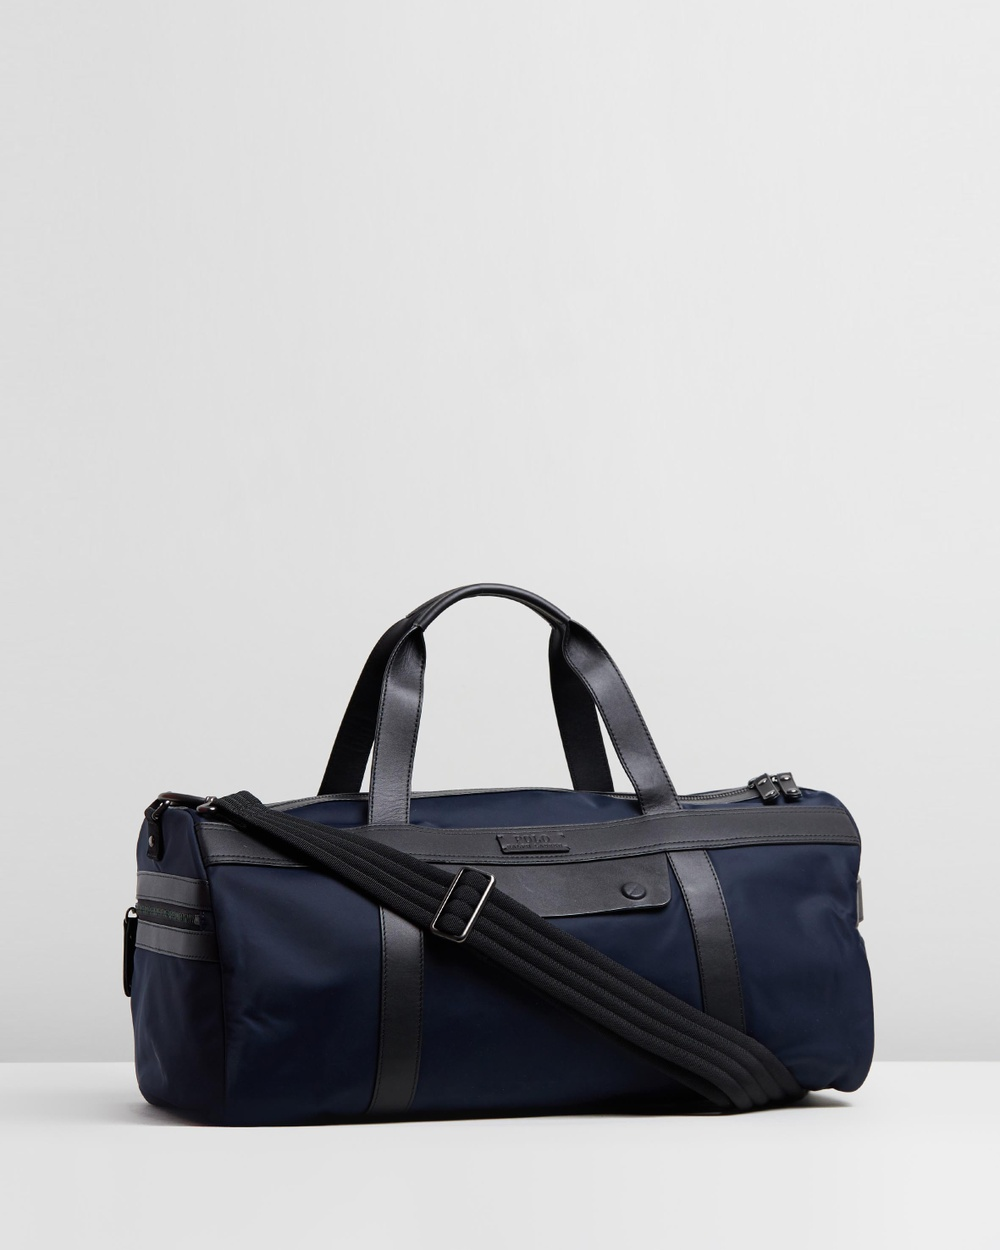 39839e0cbc Polo Ralph Lauren - Medium Duffle - Duffle Bags (Navy) Medium Duffle